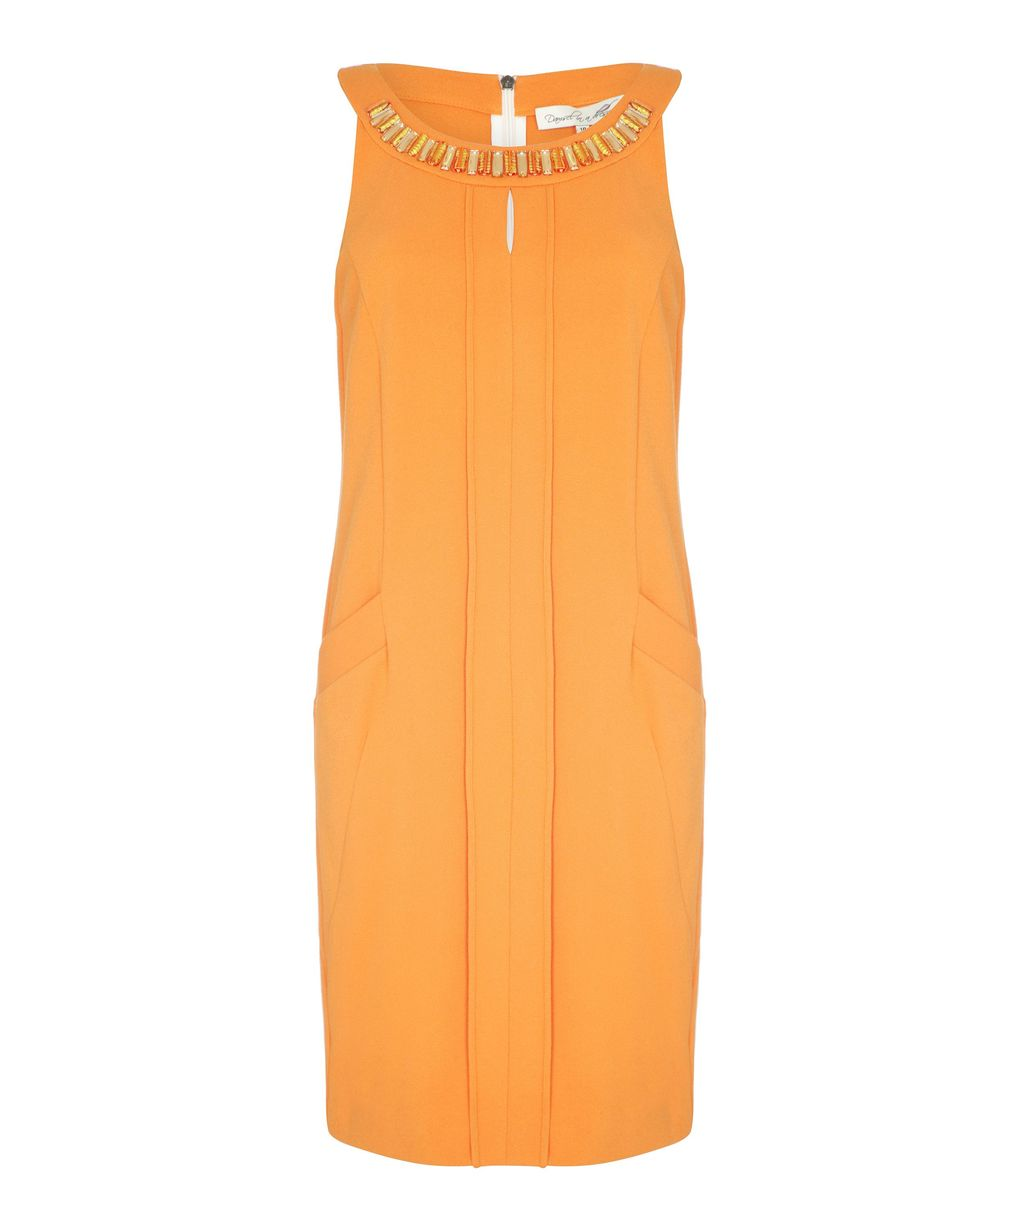 Alloy Dress, Orange - style: tunic; neckline: round neck; pattern: plain; sleeve style: sleeveless; predominant colour: bright orange; occasions: casual, evening; length: just above the knee; fit: body skimming; sleeve length: sleeveless; texture group: crepes; pattern type: fabric; season: s/s 2015; wardrobe: highlight